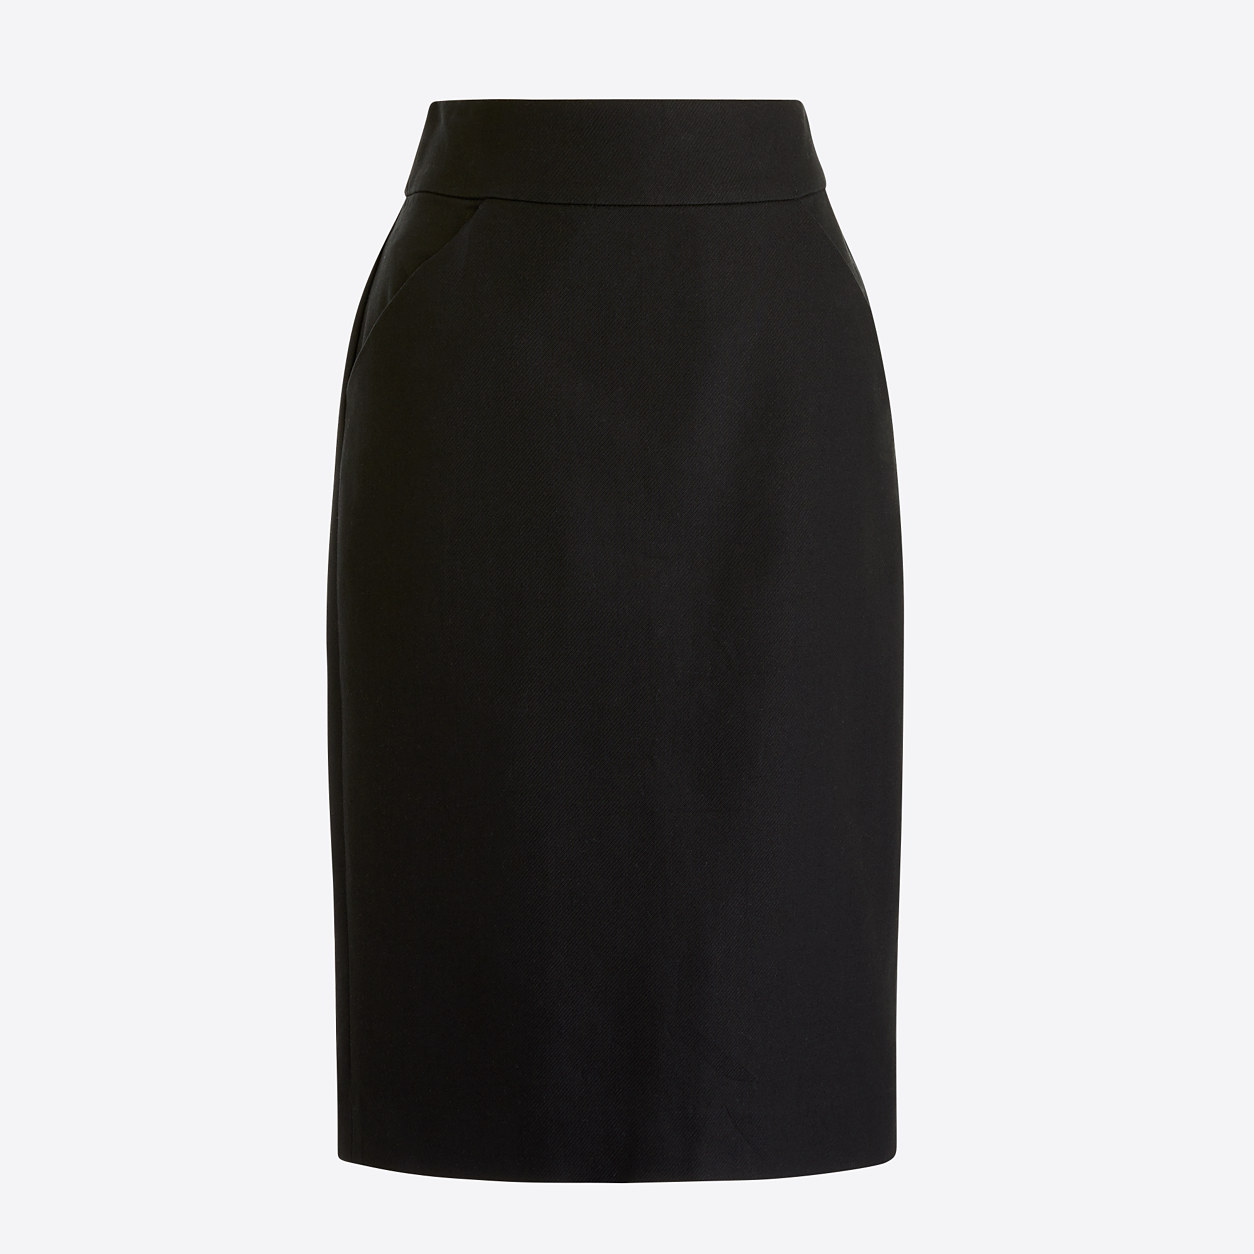 Women's Clothing - Shop Everyday Deals on Top Styles - J.Crew ...